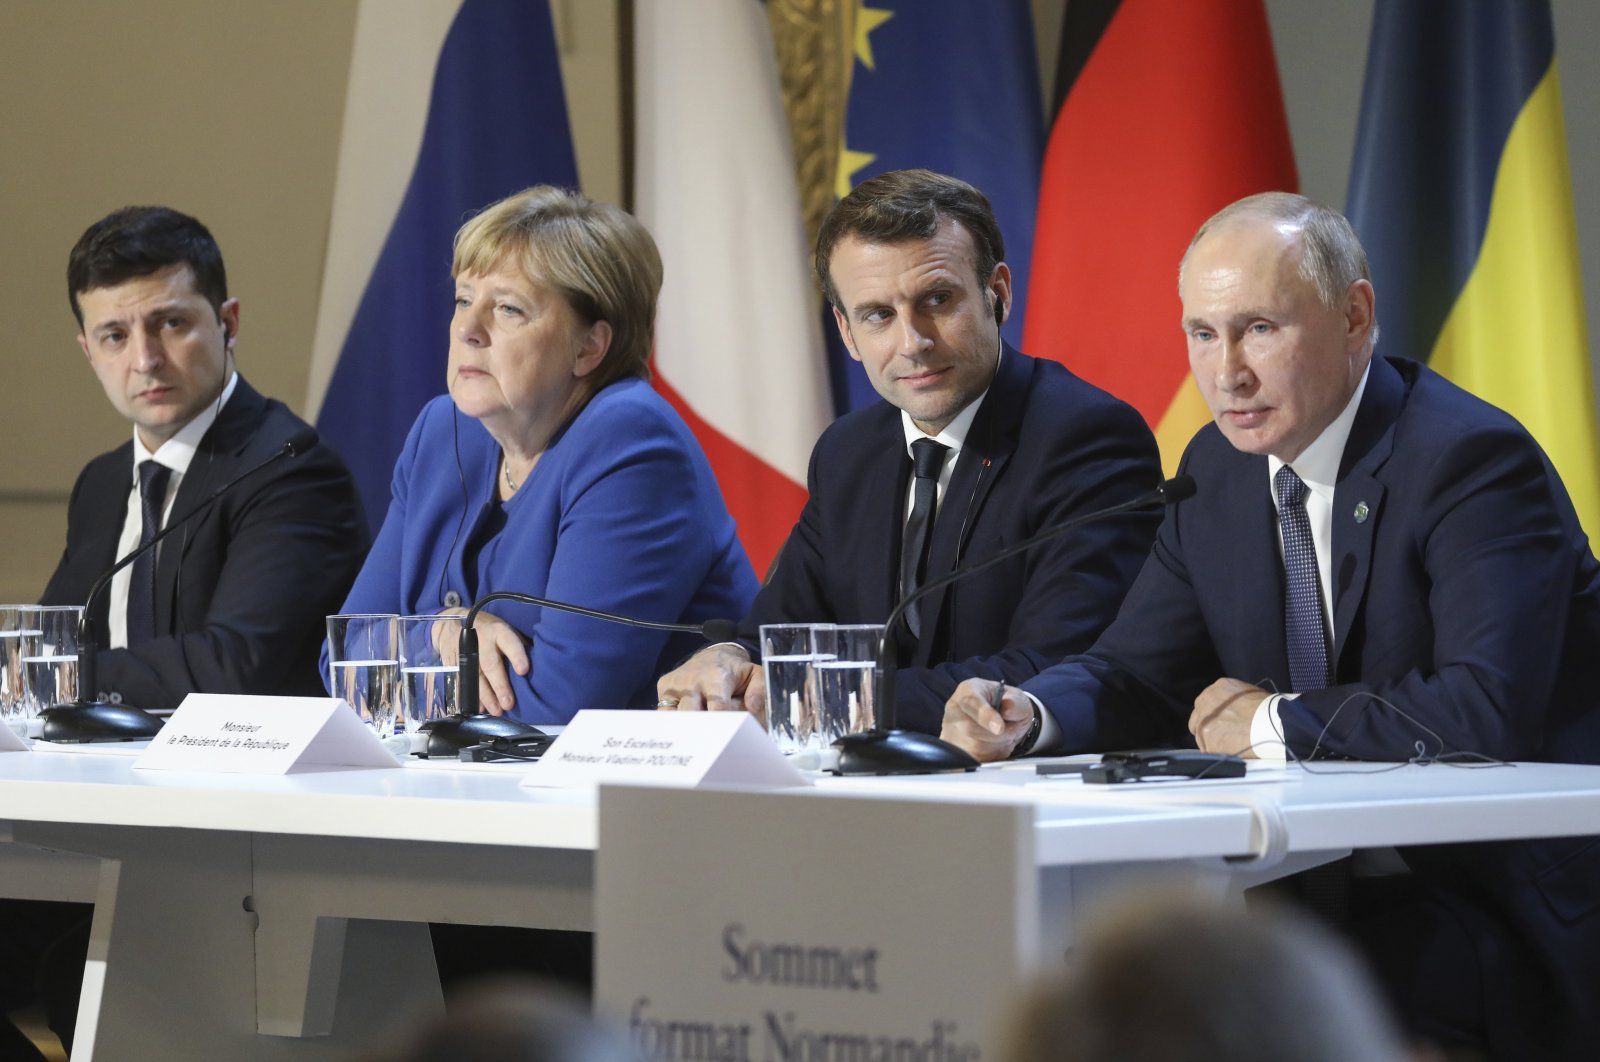 From left to right, Ukrainian President Volodymyr Zelenskiy, German Chancellor Angela Merkel, French President Emmanuel Macron and Russian President Vladimir Putin attend a joint news conference at the Elysee Palace in Paris, France, Dec. 9, 2019. (AP Photo)